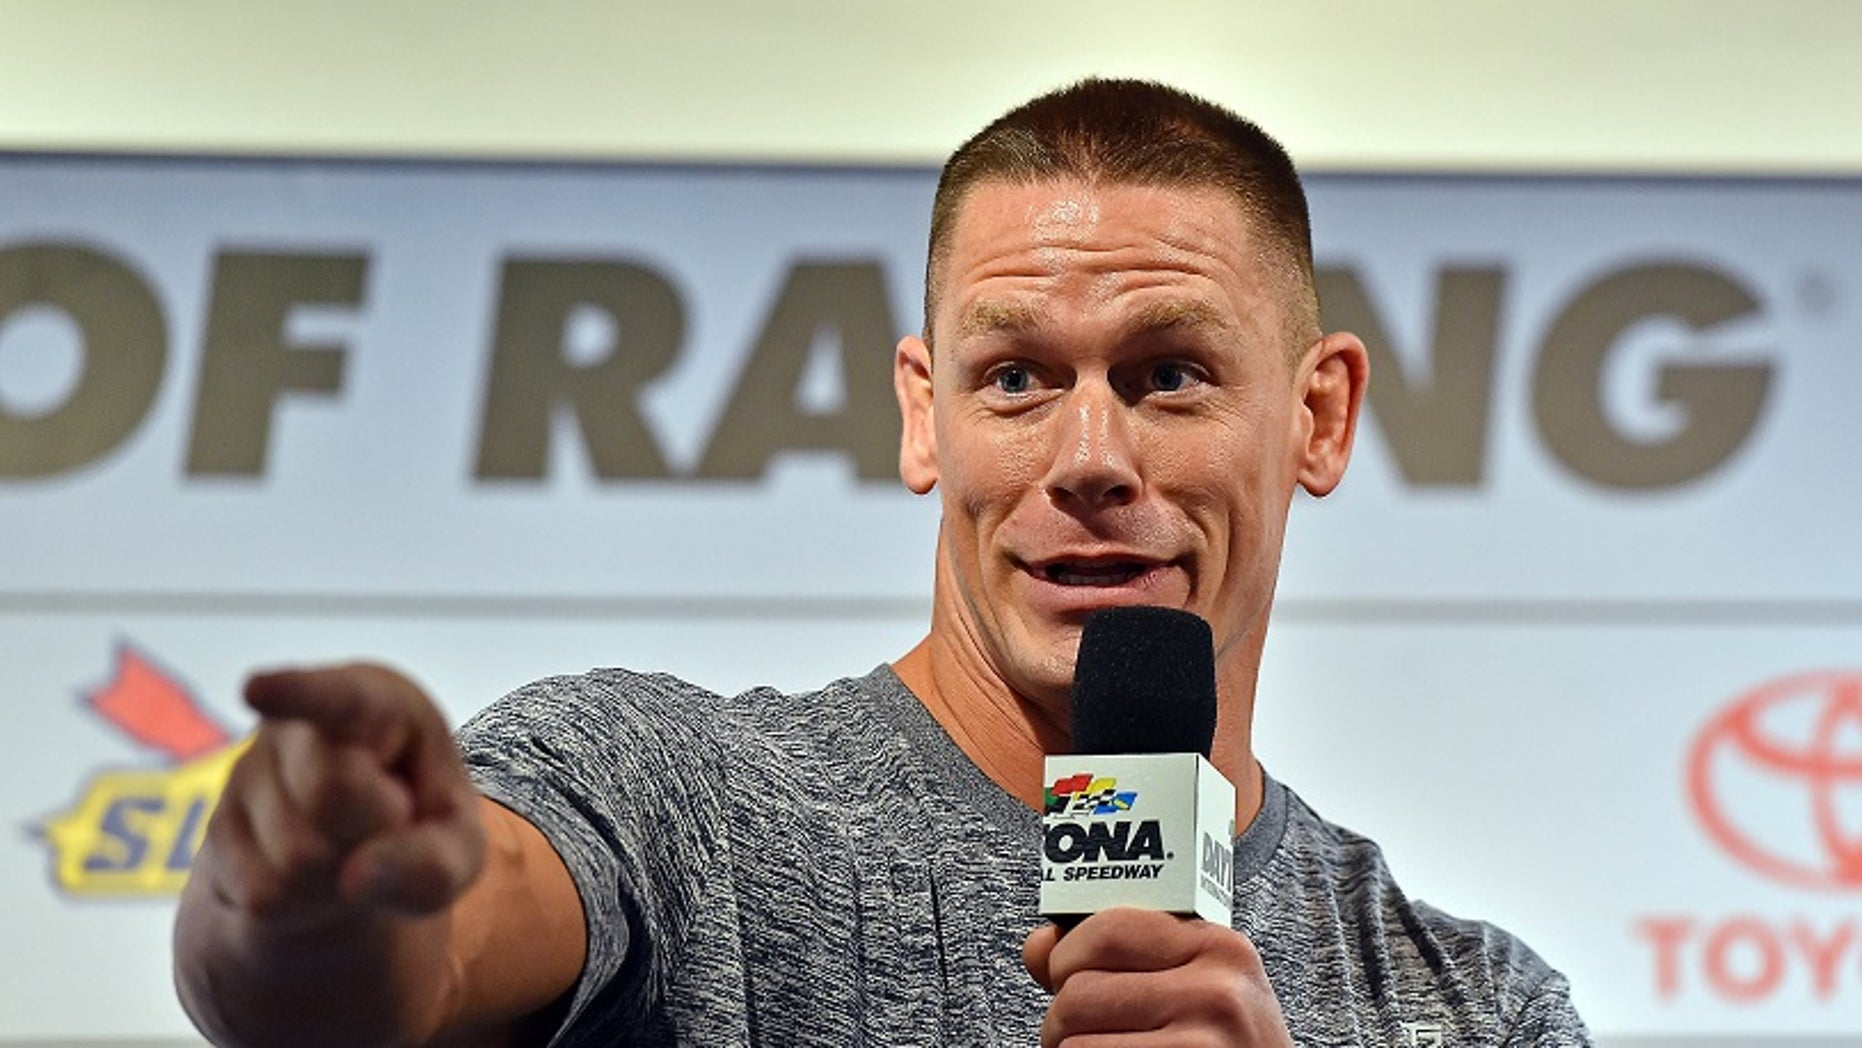 John Cena has been sued by Ford motors for reportedly violating his contract and selling his $500,000 Ford GT.